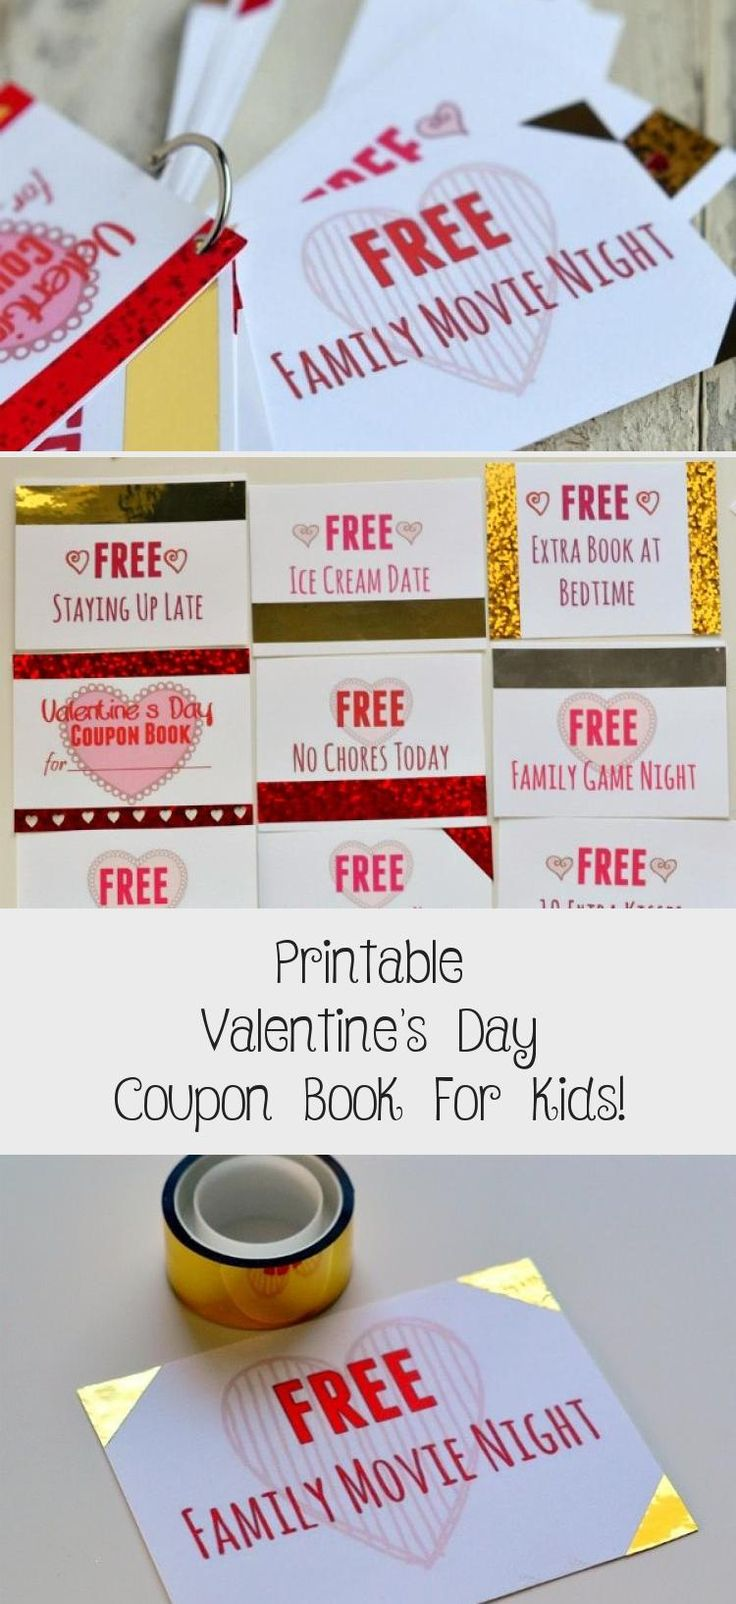 Treat your little sweetheart to a Printable Valentine's